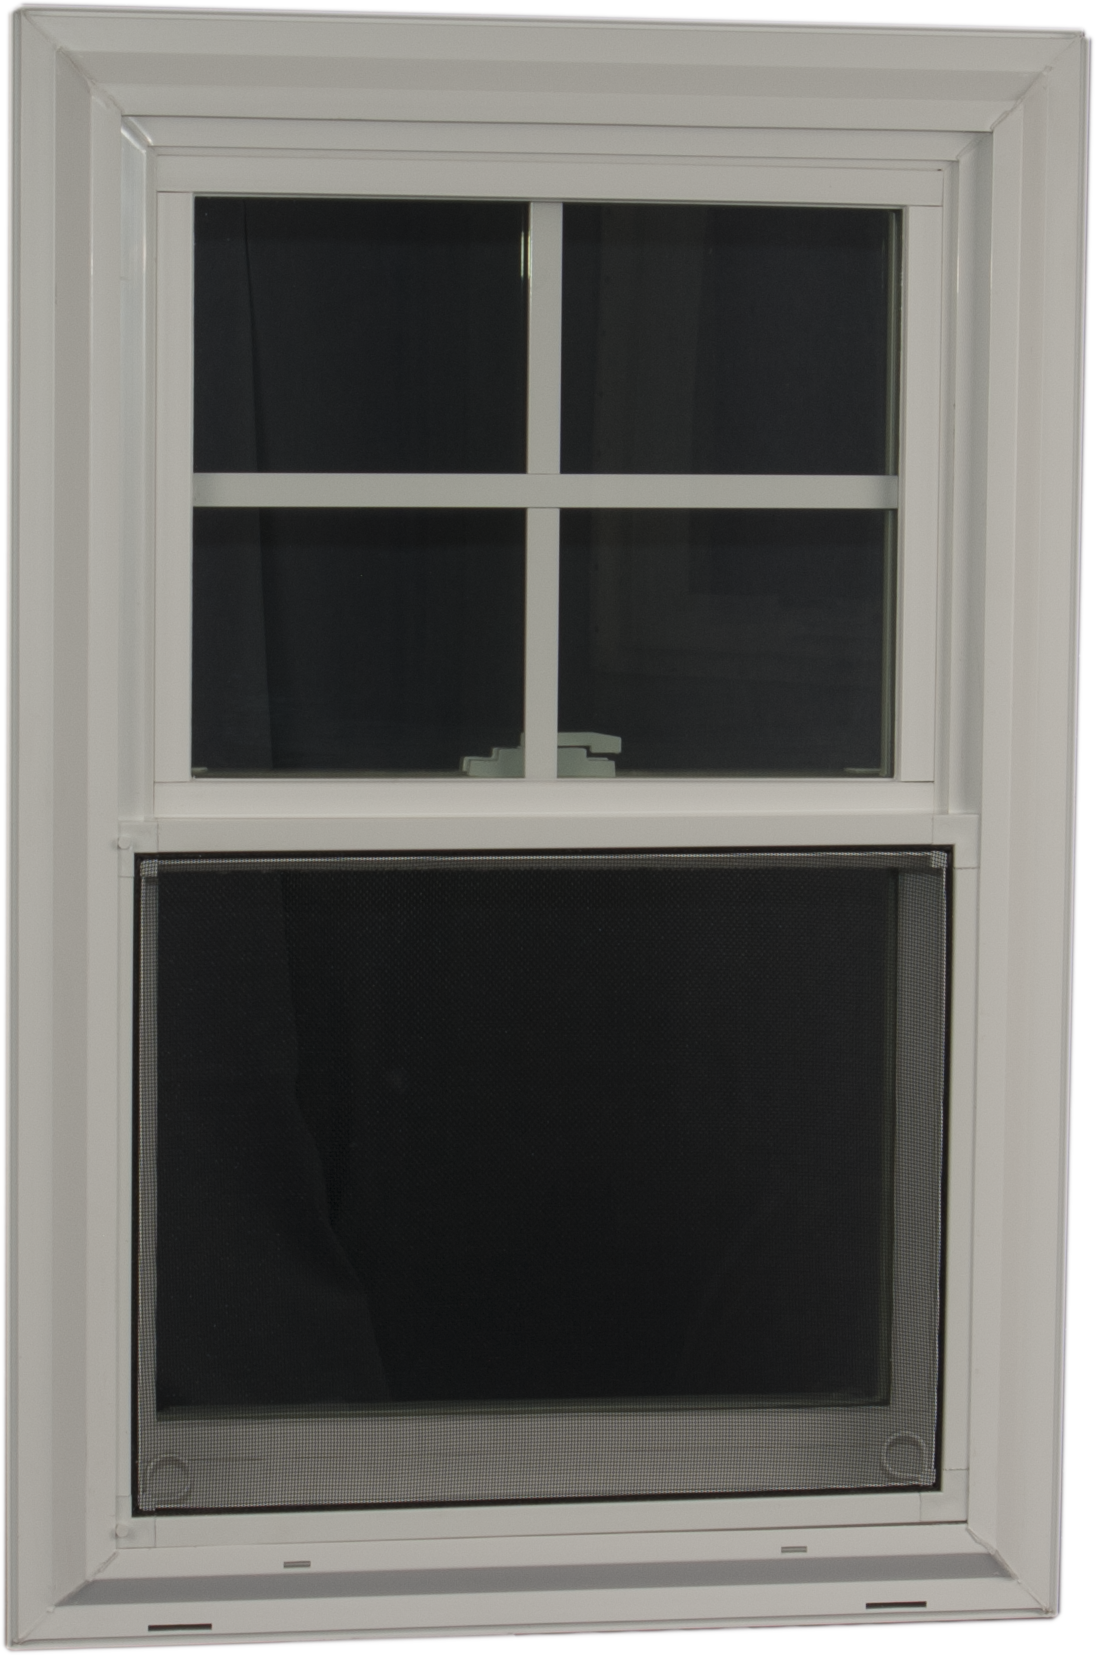 Double hung windows vinyl window manufacturer for Vinyl window manufacturers